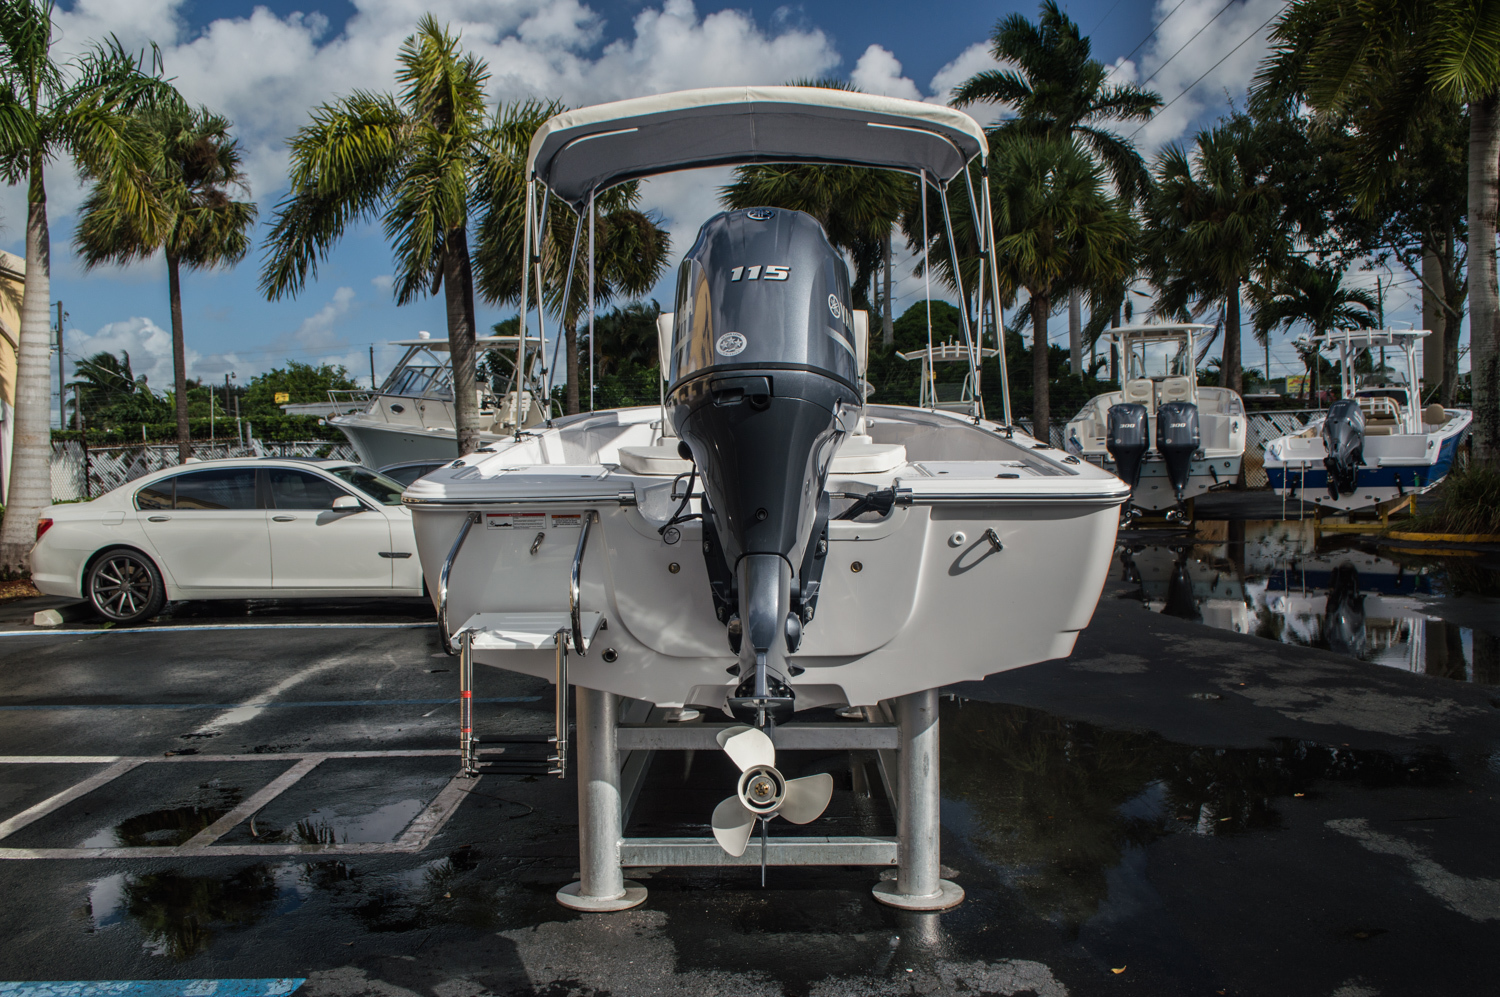 Thumbnail 6 for New 2016 Sportsman 20 Island Bay boat for sale in West Palm Beach, FL